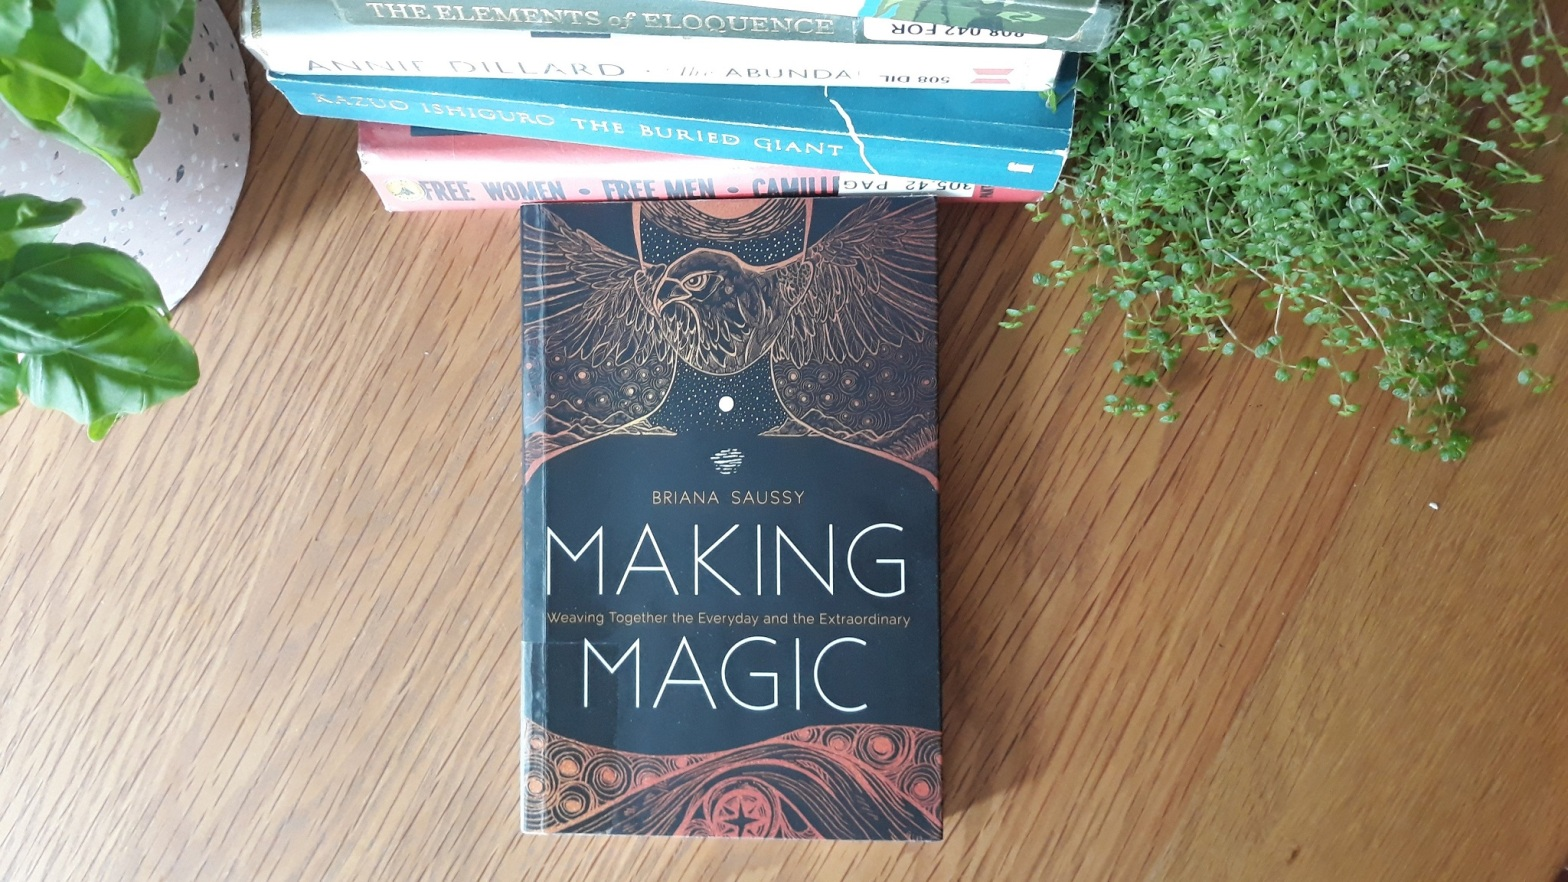 Book Review: Making Magic by Briana Saussy